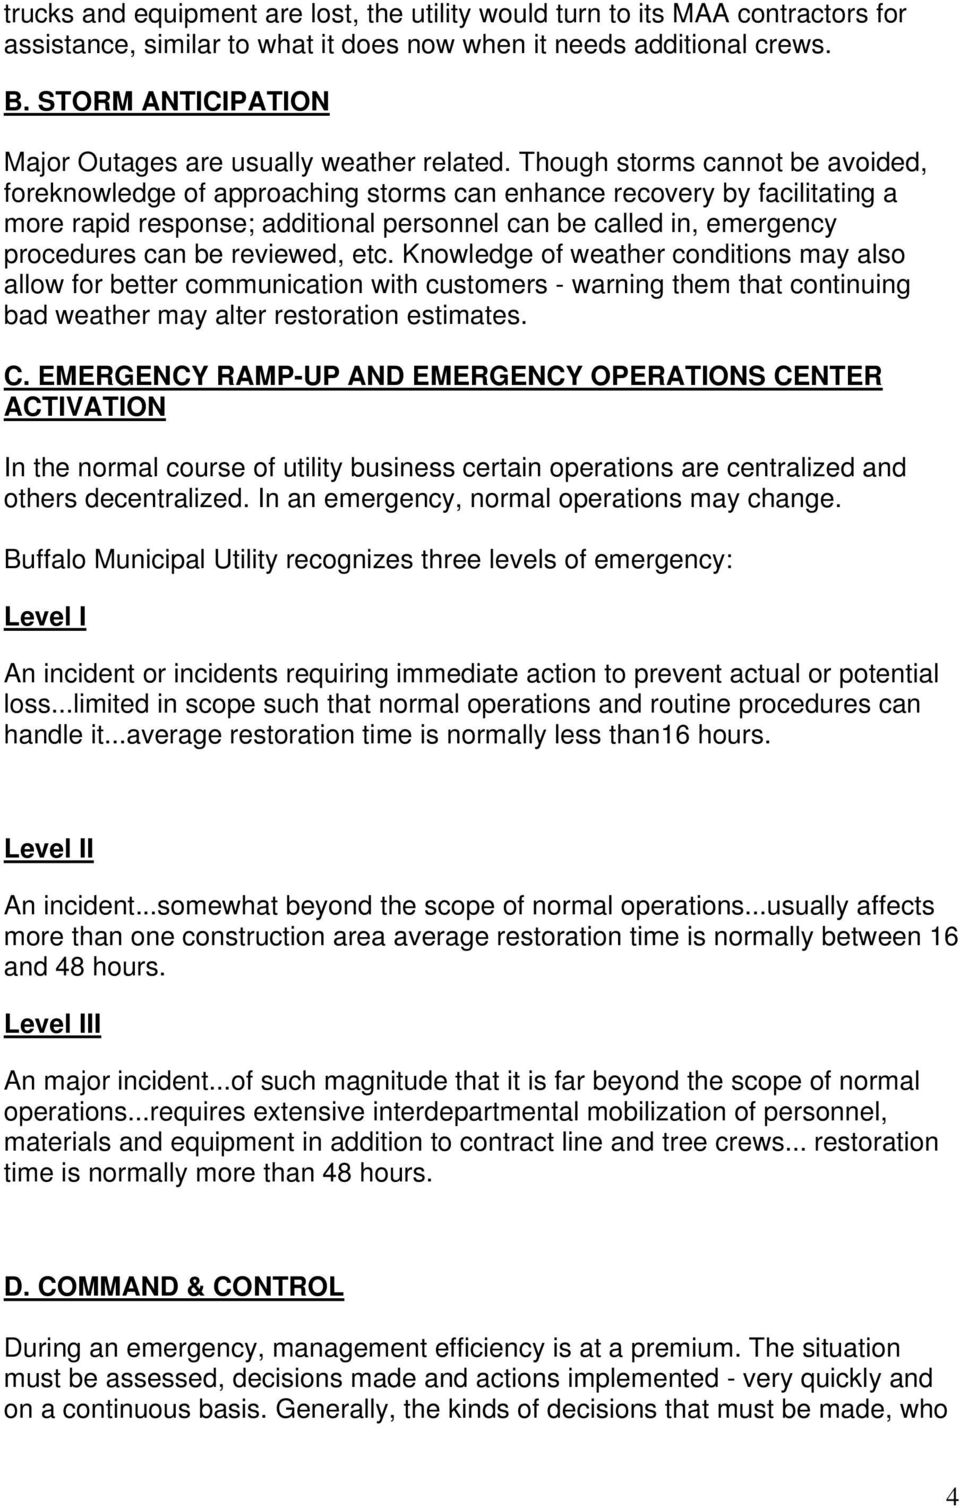 Though storms cannot be avoided, foreknowledge of approaching storms can enhance recovery by facilitating a more rapid response; additional personnel can be called in, emergency procedures can be